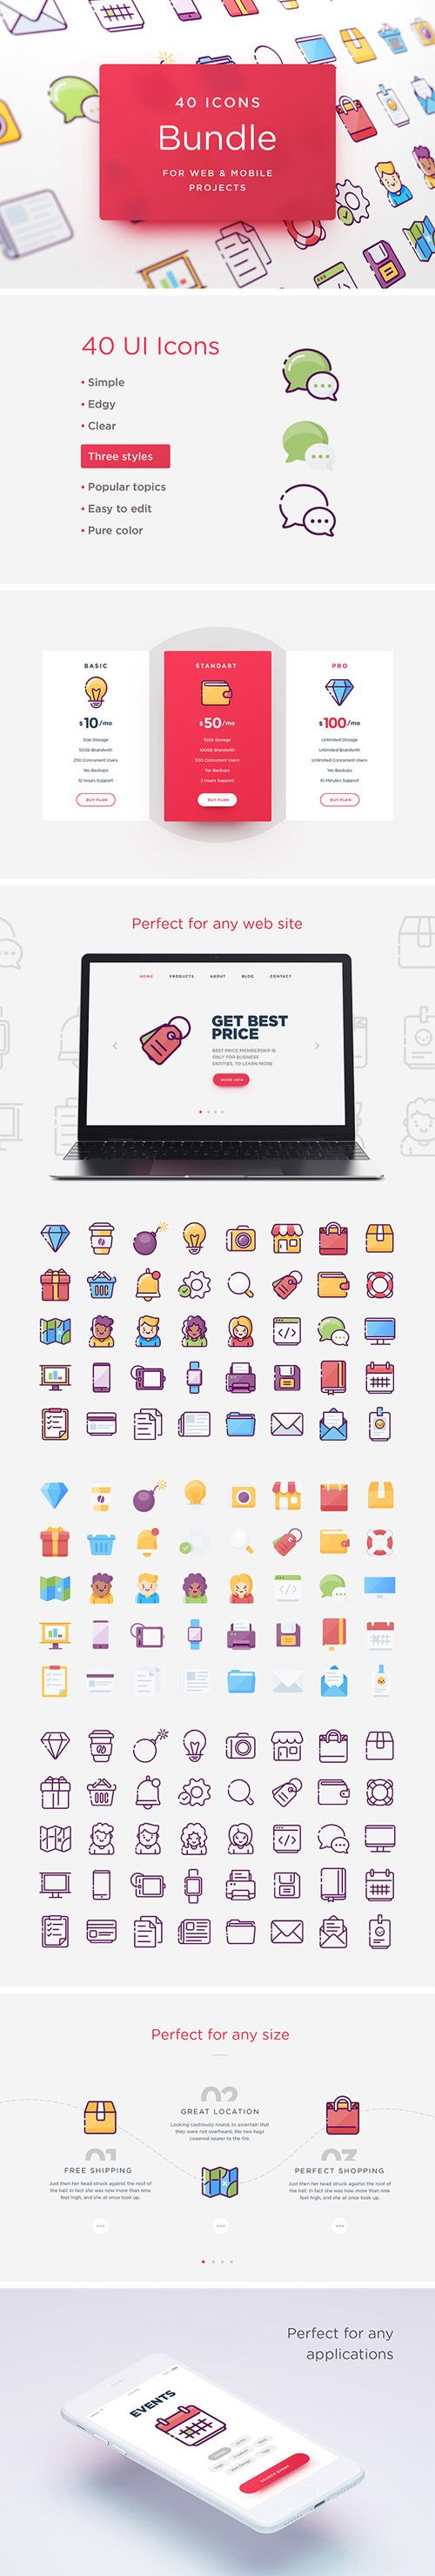 Web & Mobile Icons Bundle [AI/EPS/SVG/PSD/PNG] Free Download http://ift.tt/2FePWfH